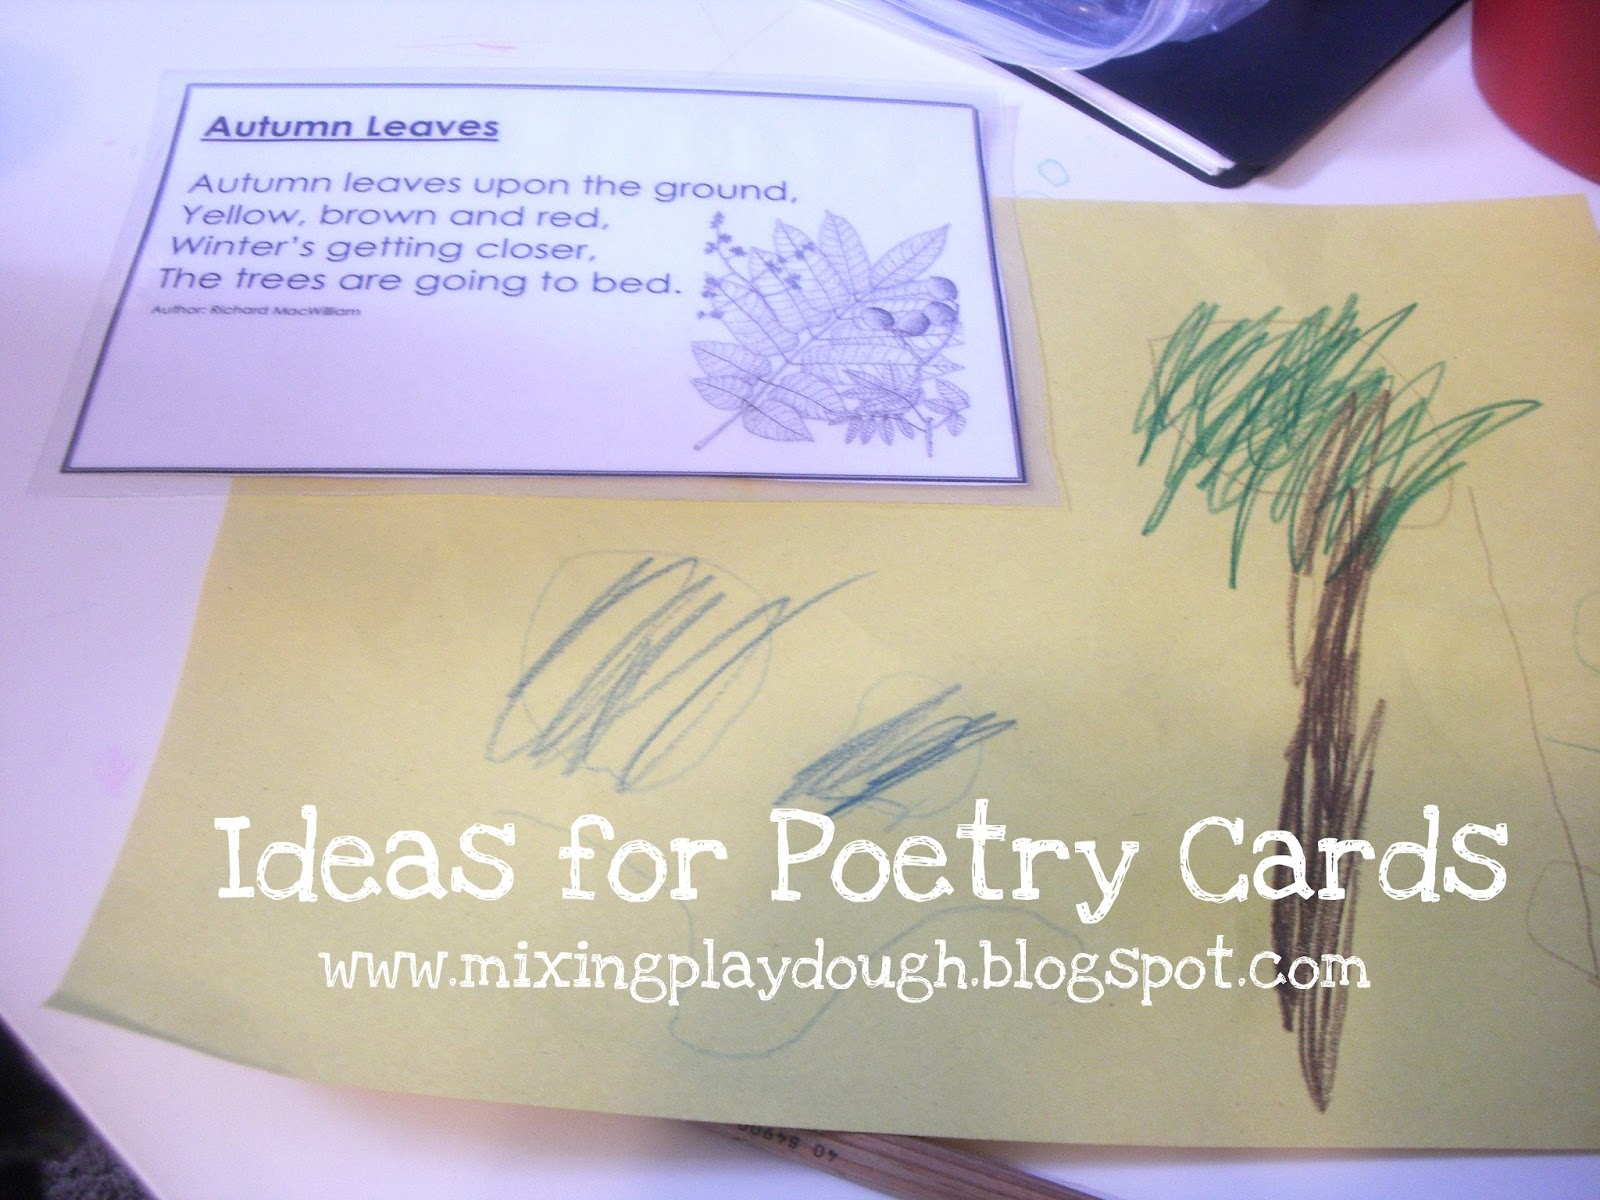 Mixing Playdough What To Do With Short Poetry Cards